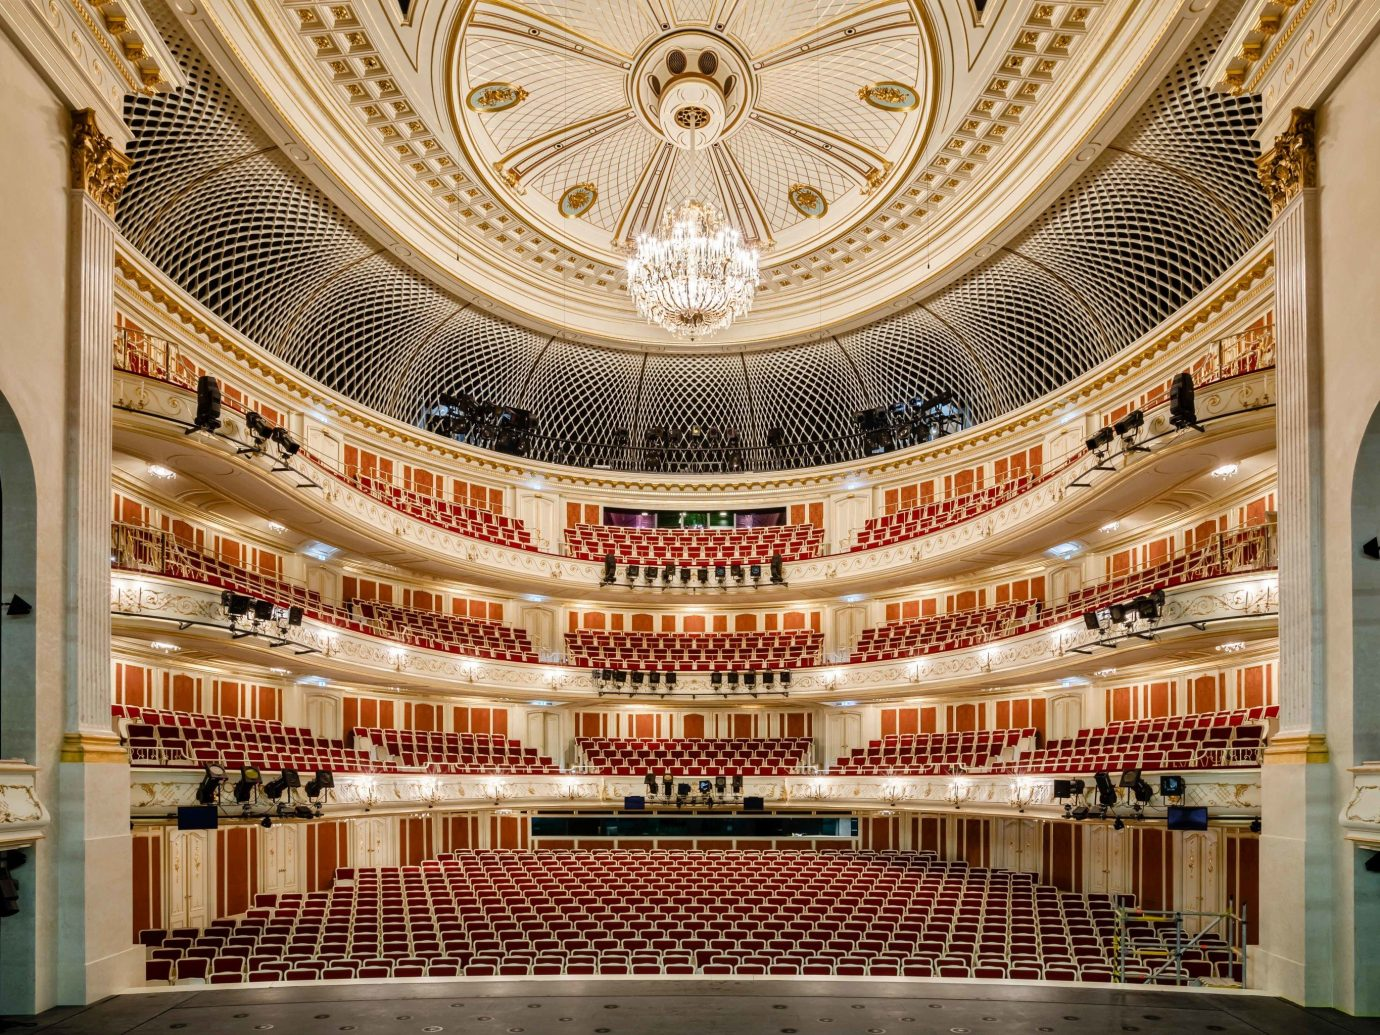 europe Trip Ideas opera house theatre concert hall ceiling performing arts center auditorium interior design symmetry building